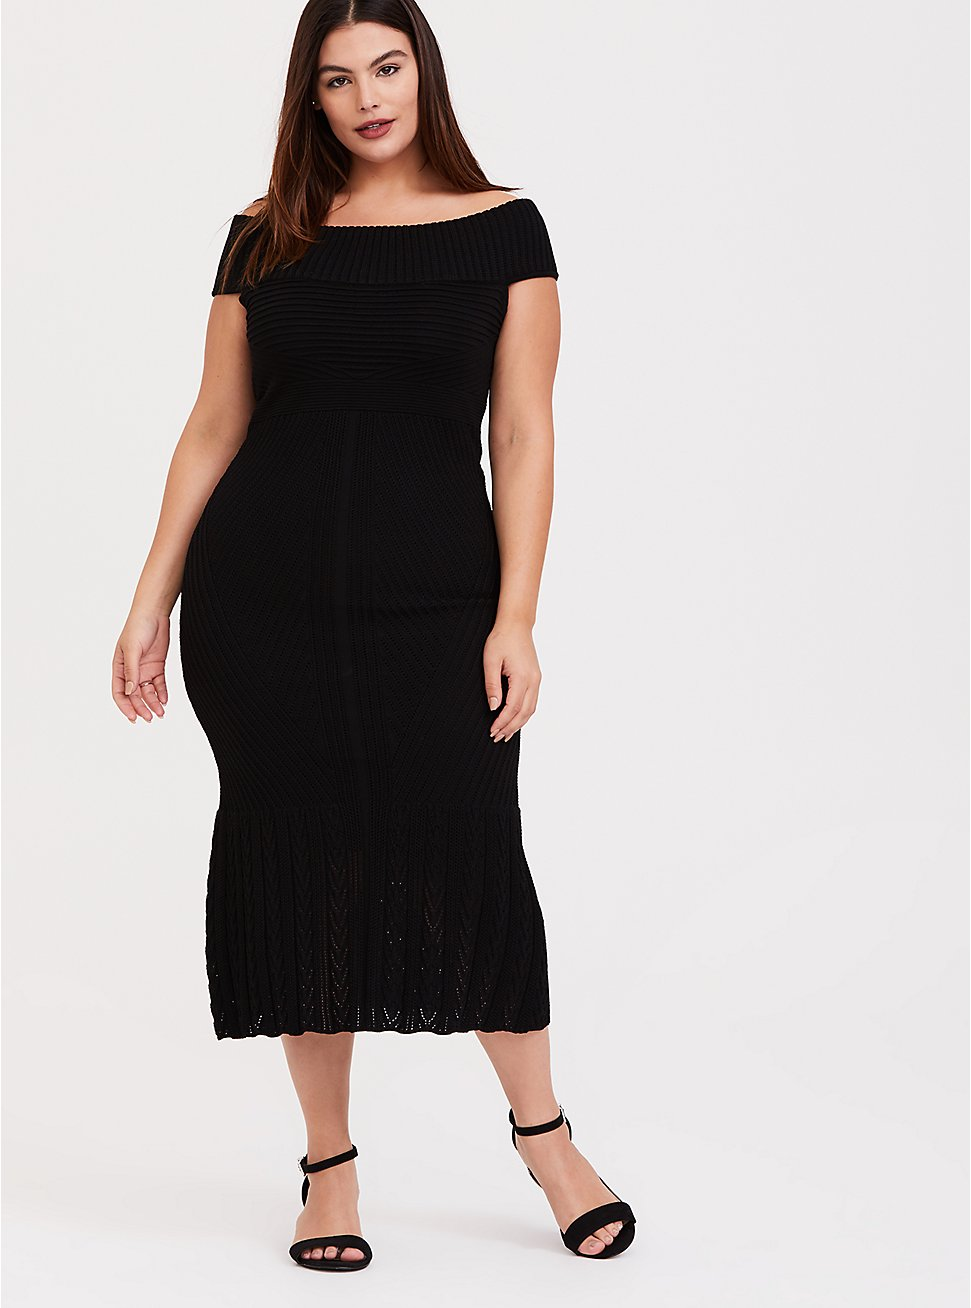 Black Sweater Trumpet Midi Dress, DEEP BLACK, hi-res